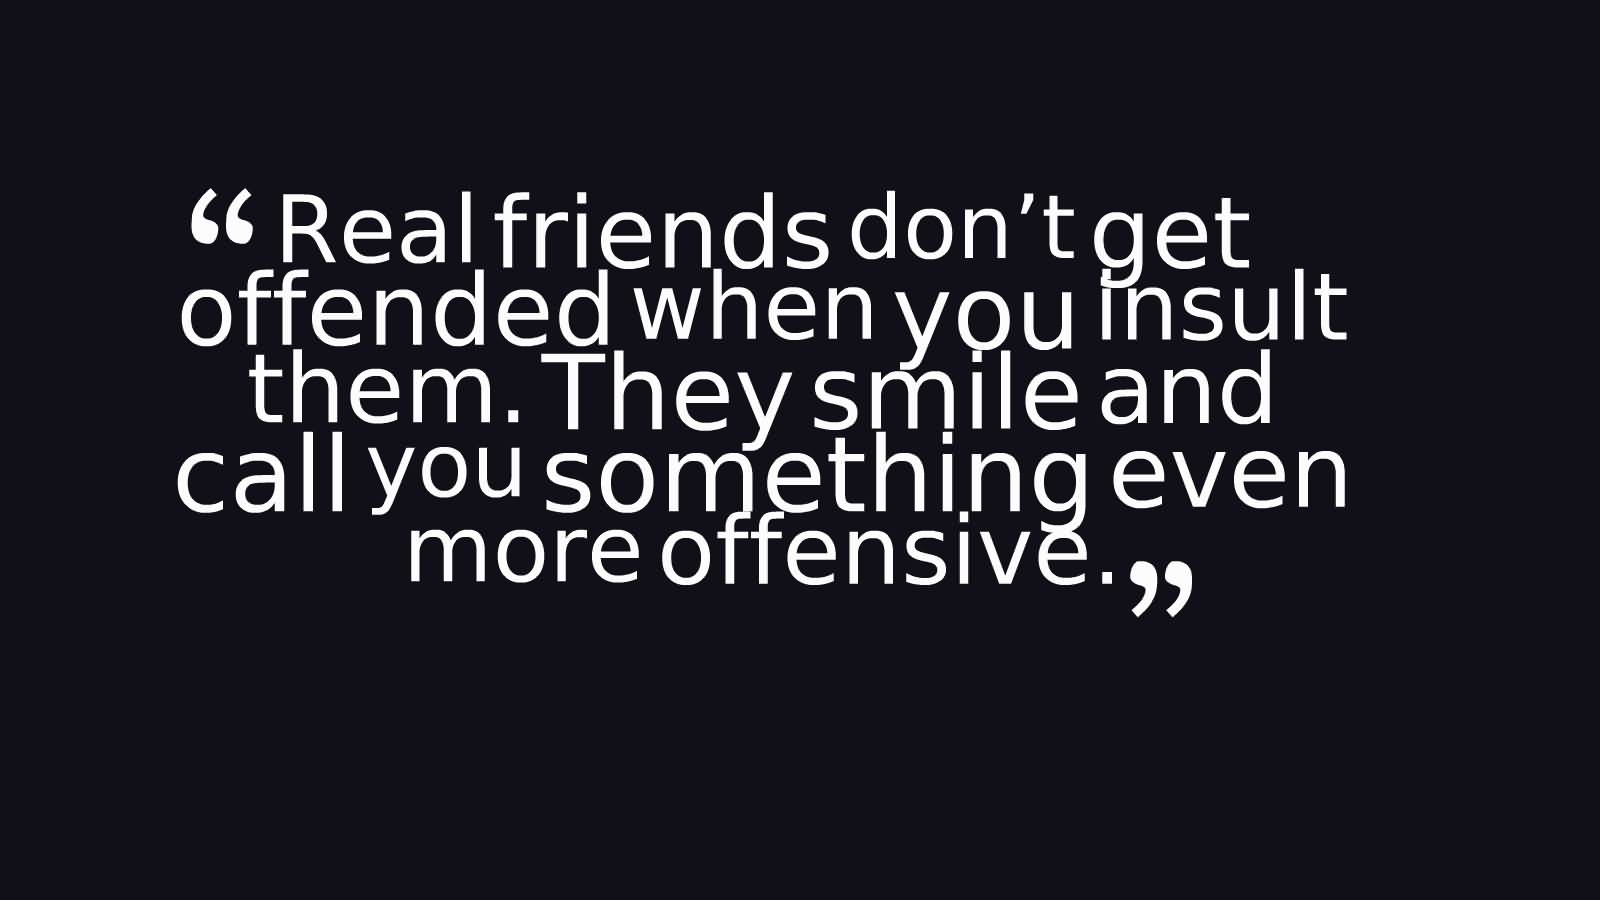 Wise Quotes About Friendship Friendship Quotes Pictures And Friendship Quotes Images